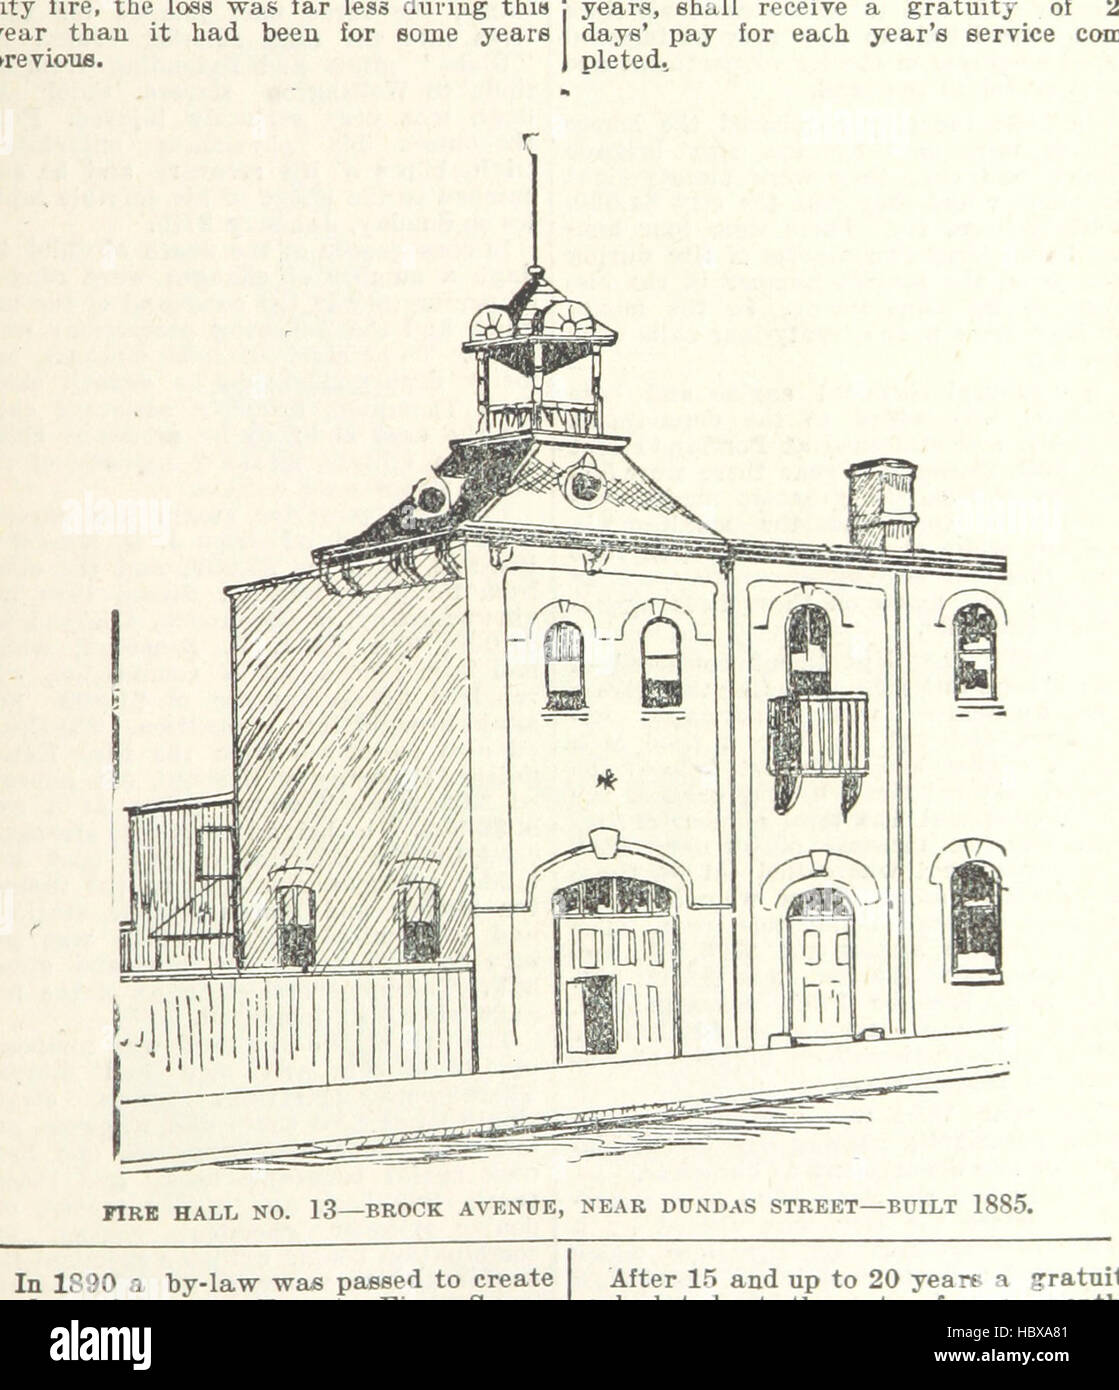 Image taken from page 73 of 'Robertson's Landmarks of Toronto. A collection of historical sketches of the - Stock Image